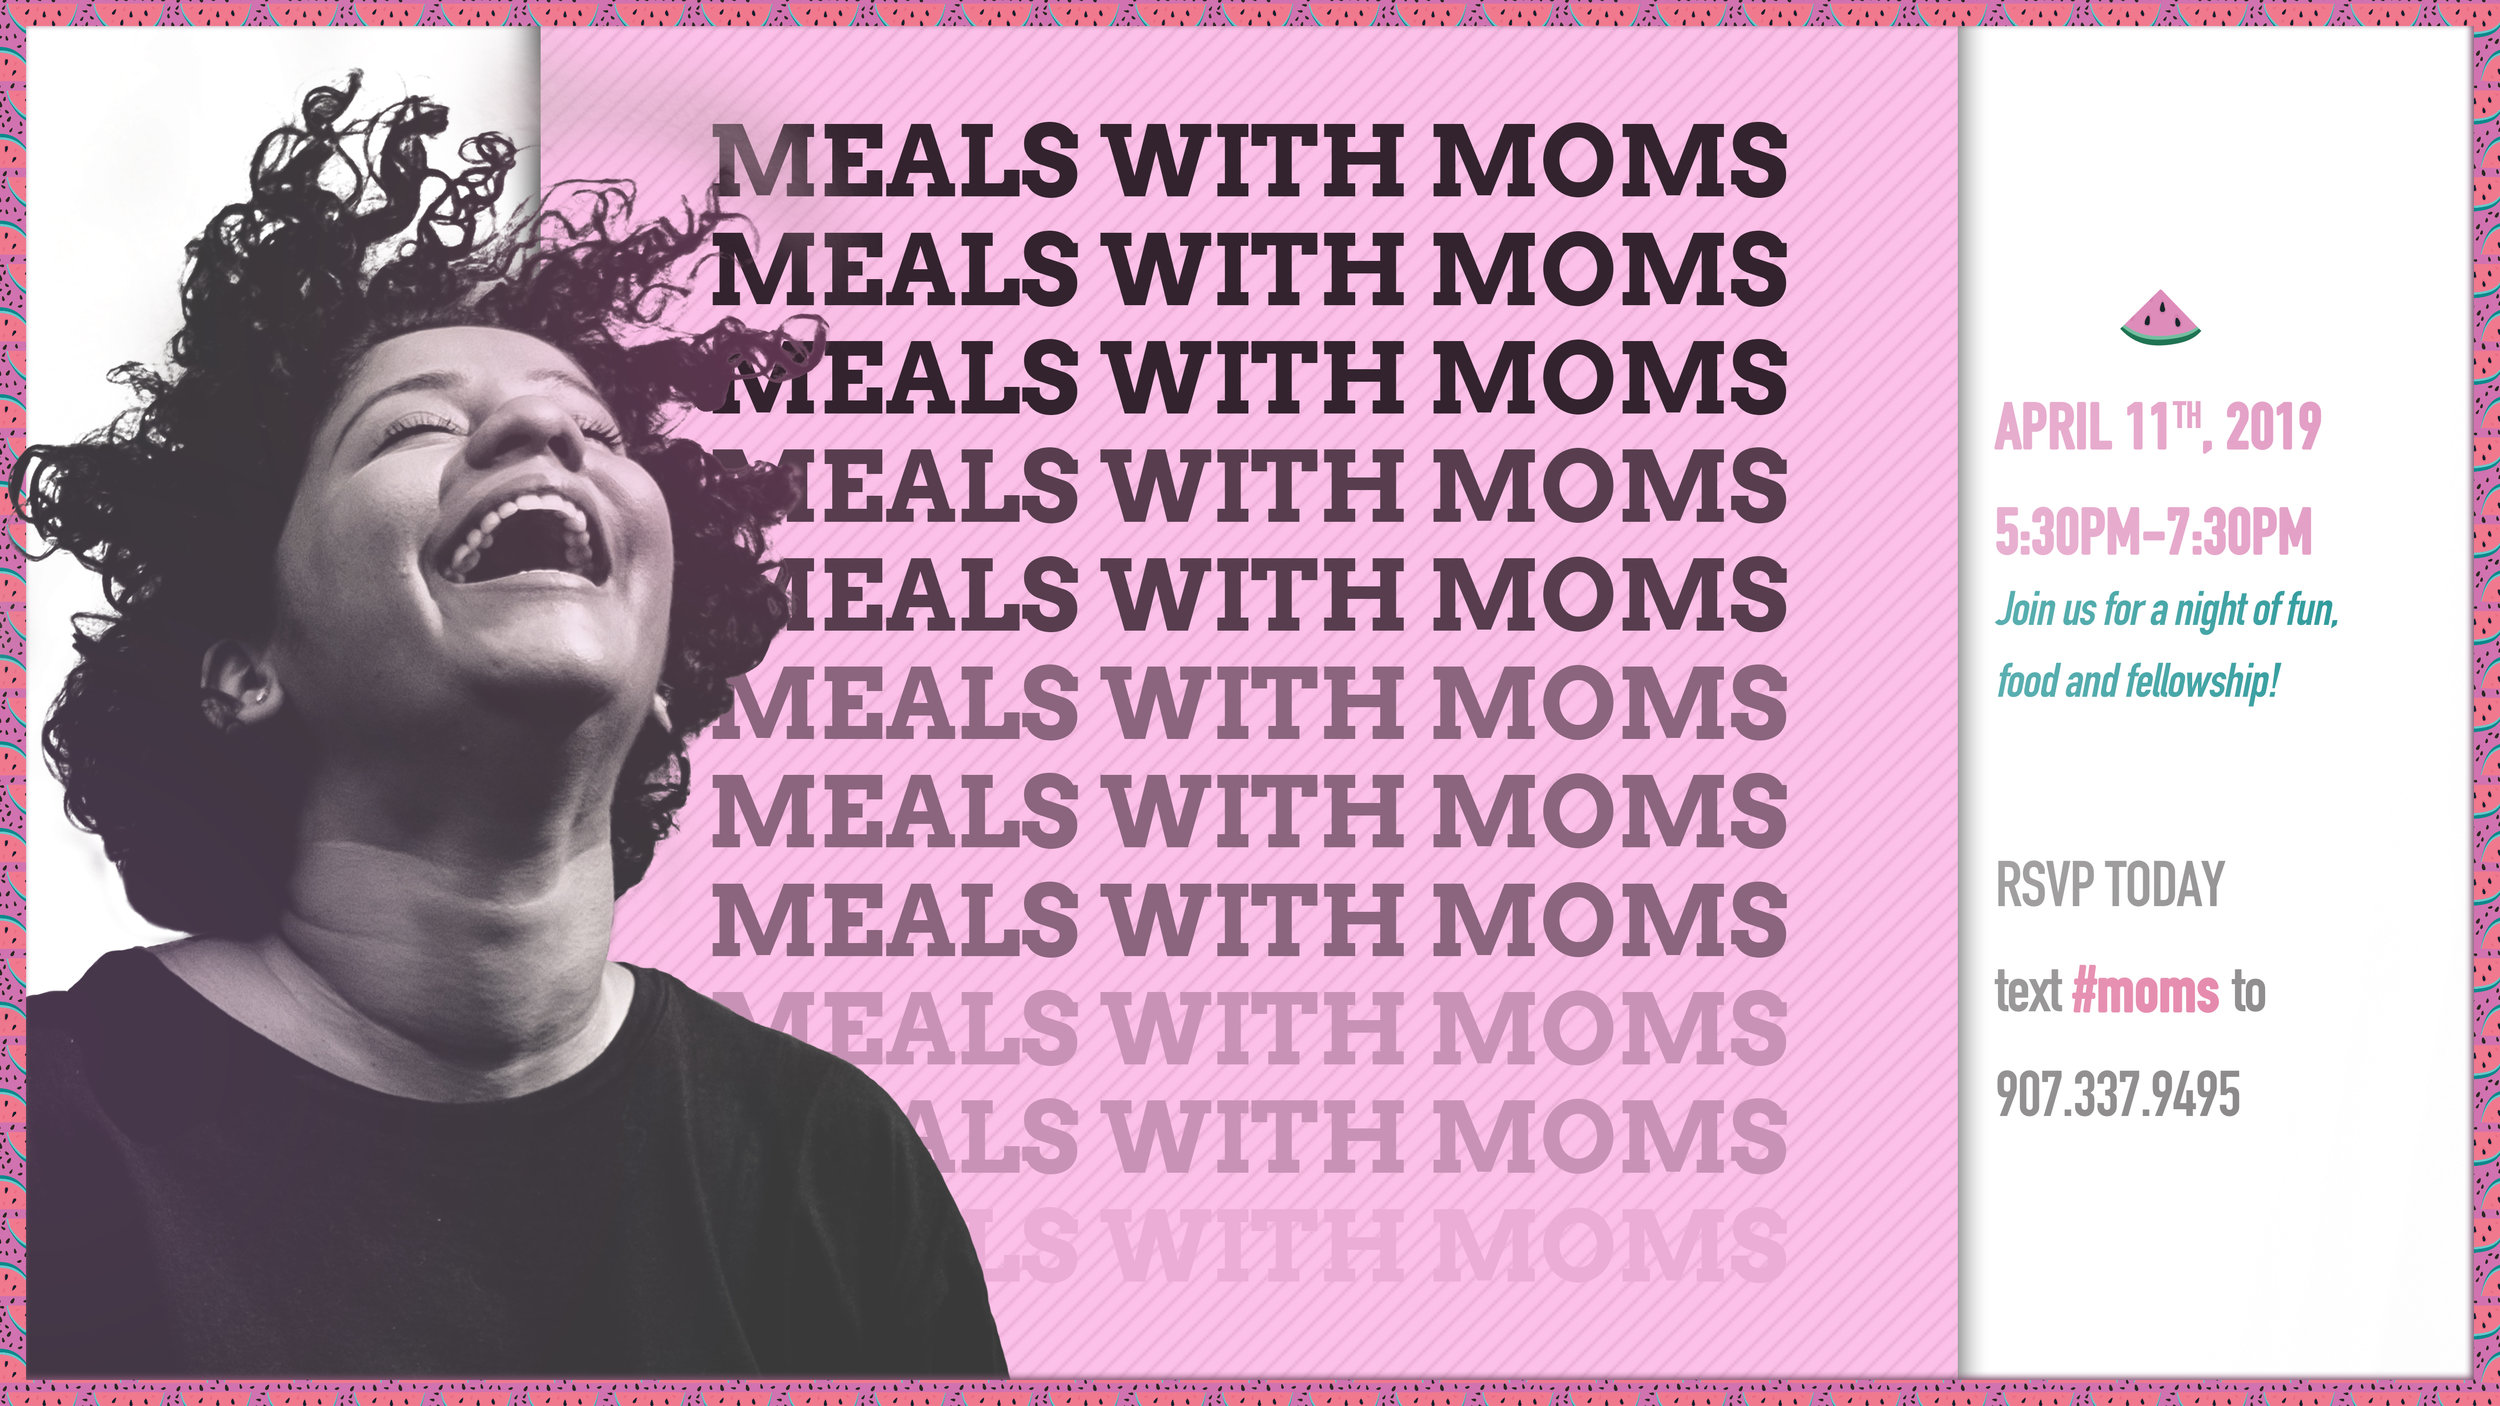 Meals for moms | Screen.jpg